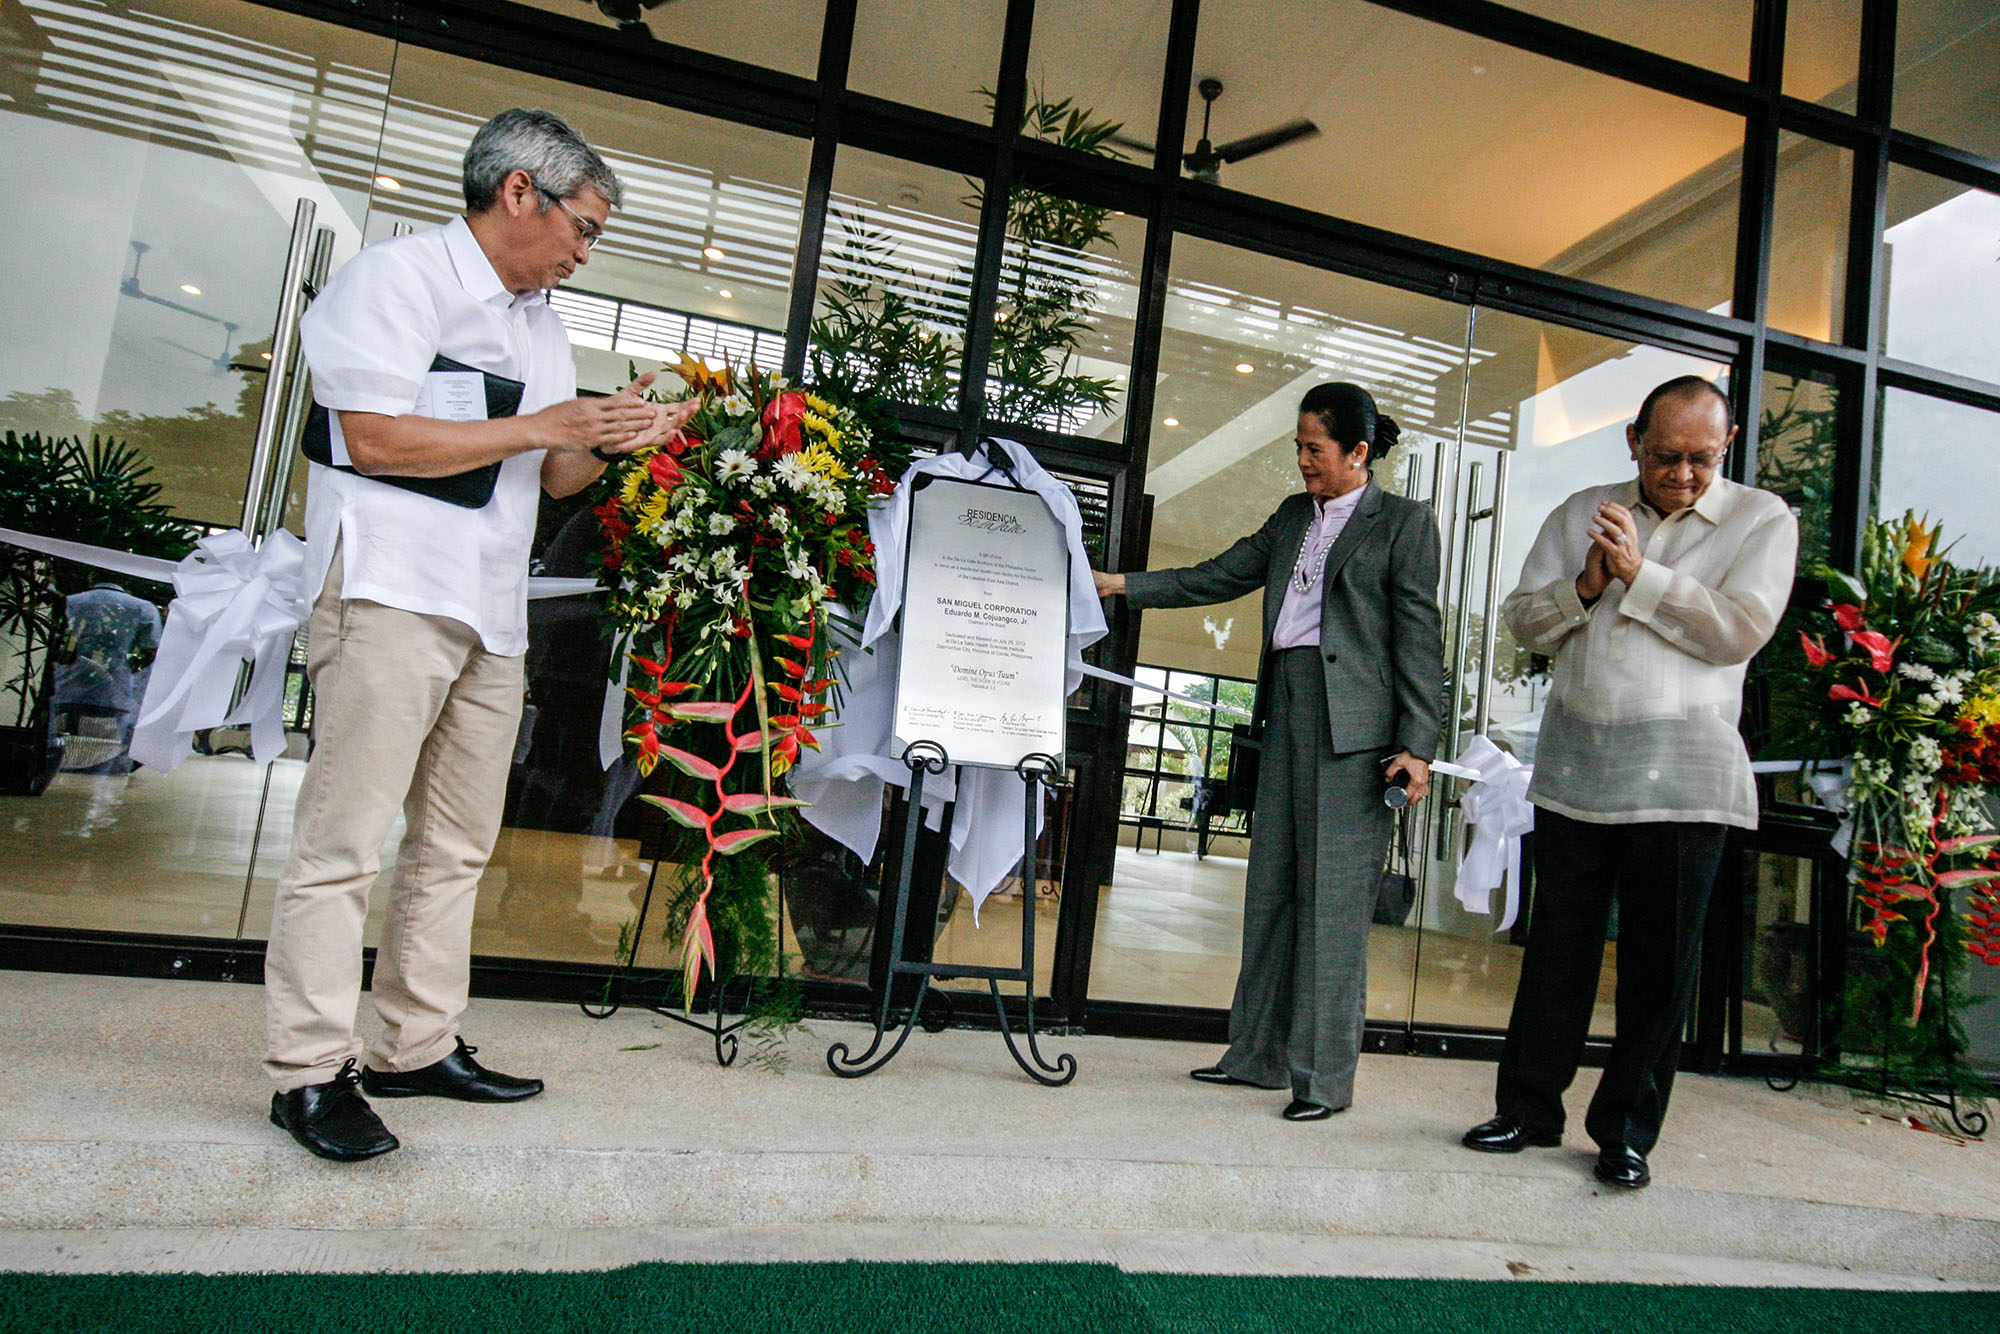 """Mr. Eduardo """"Danding"""" Congjuangco (right) and his wife, Soledad """"Gretchen"""" Cojuangco (center), unveil a commemorative marker in their honor while Br. Edmundo Fernandez FSC, LEAD Visitor, looks on."""